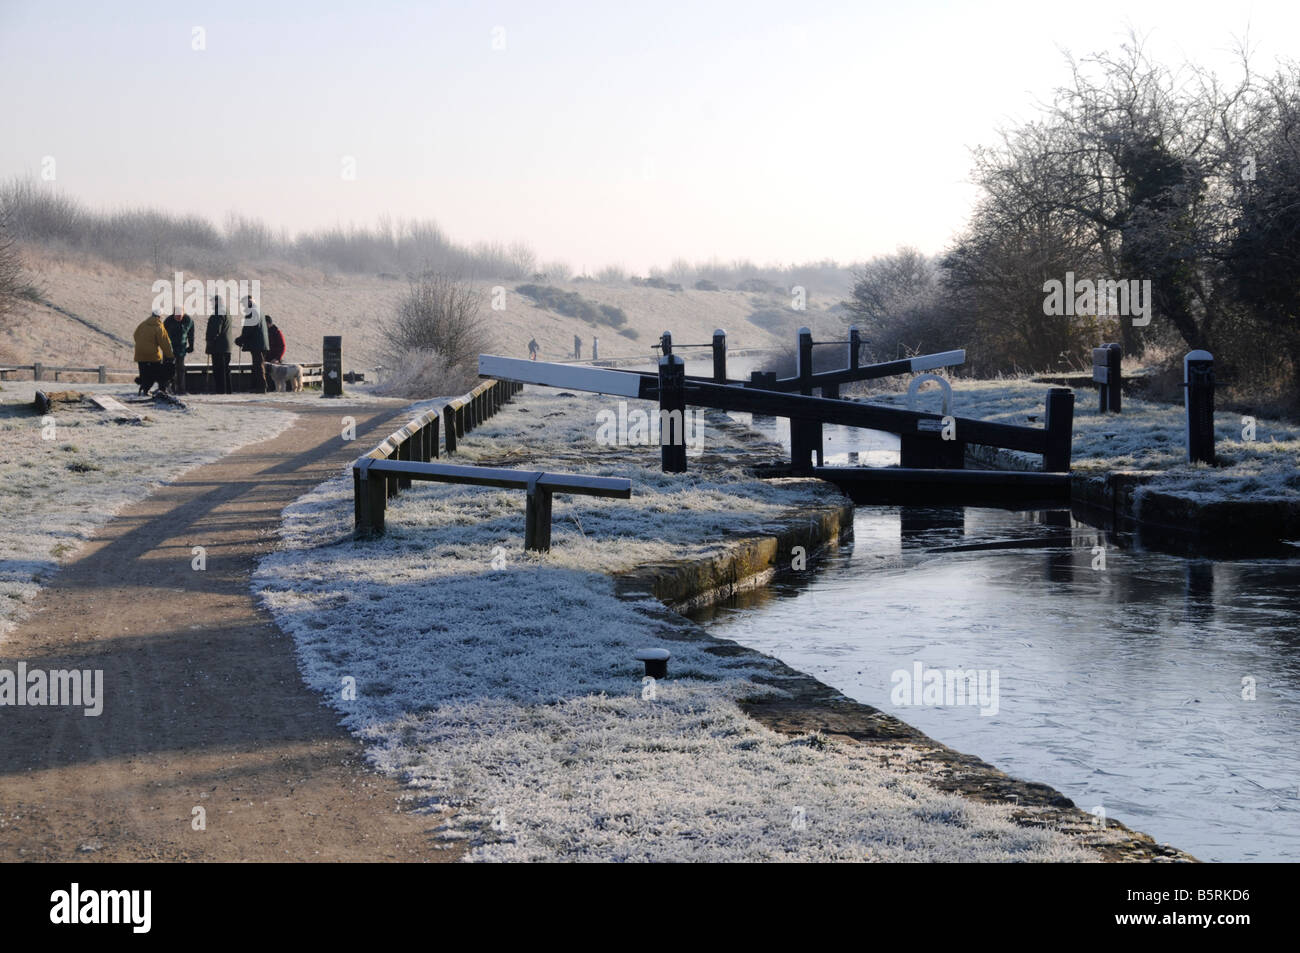 crowd of friends on the canal towpath on a cold frosty morning Chesterfield Derbyshire - Stock Image